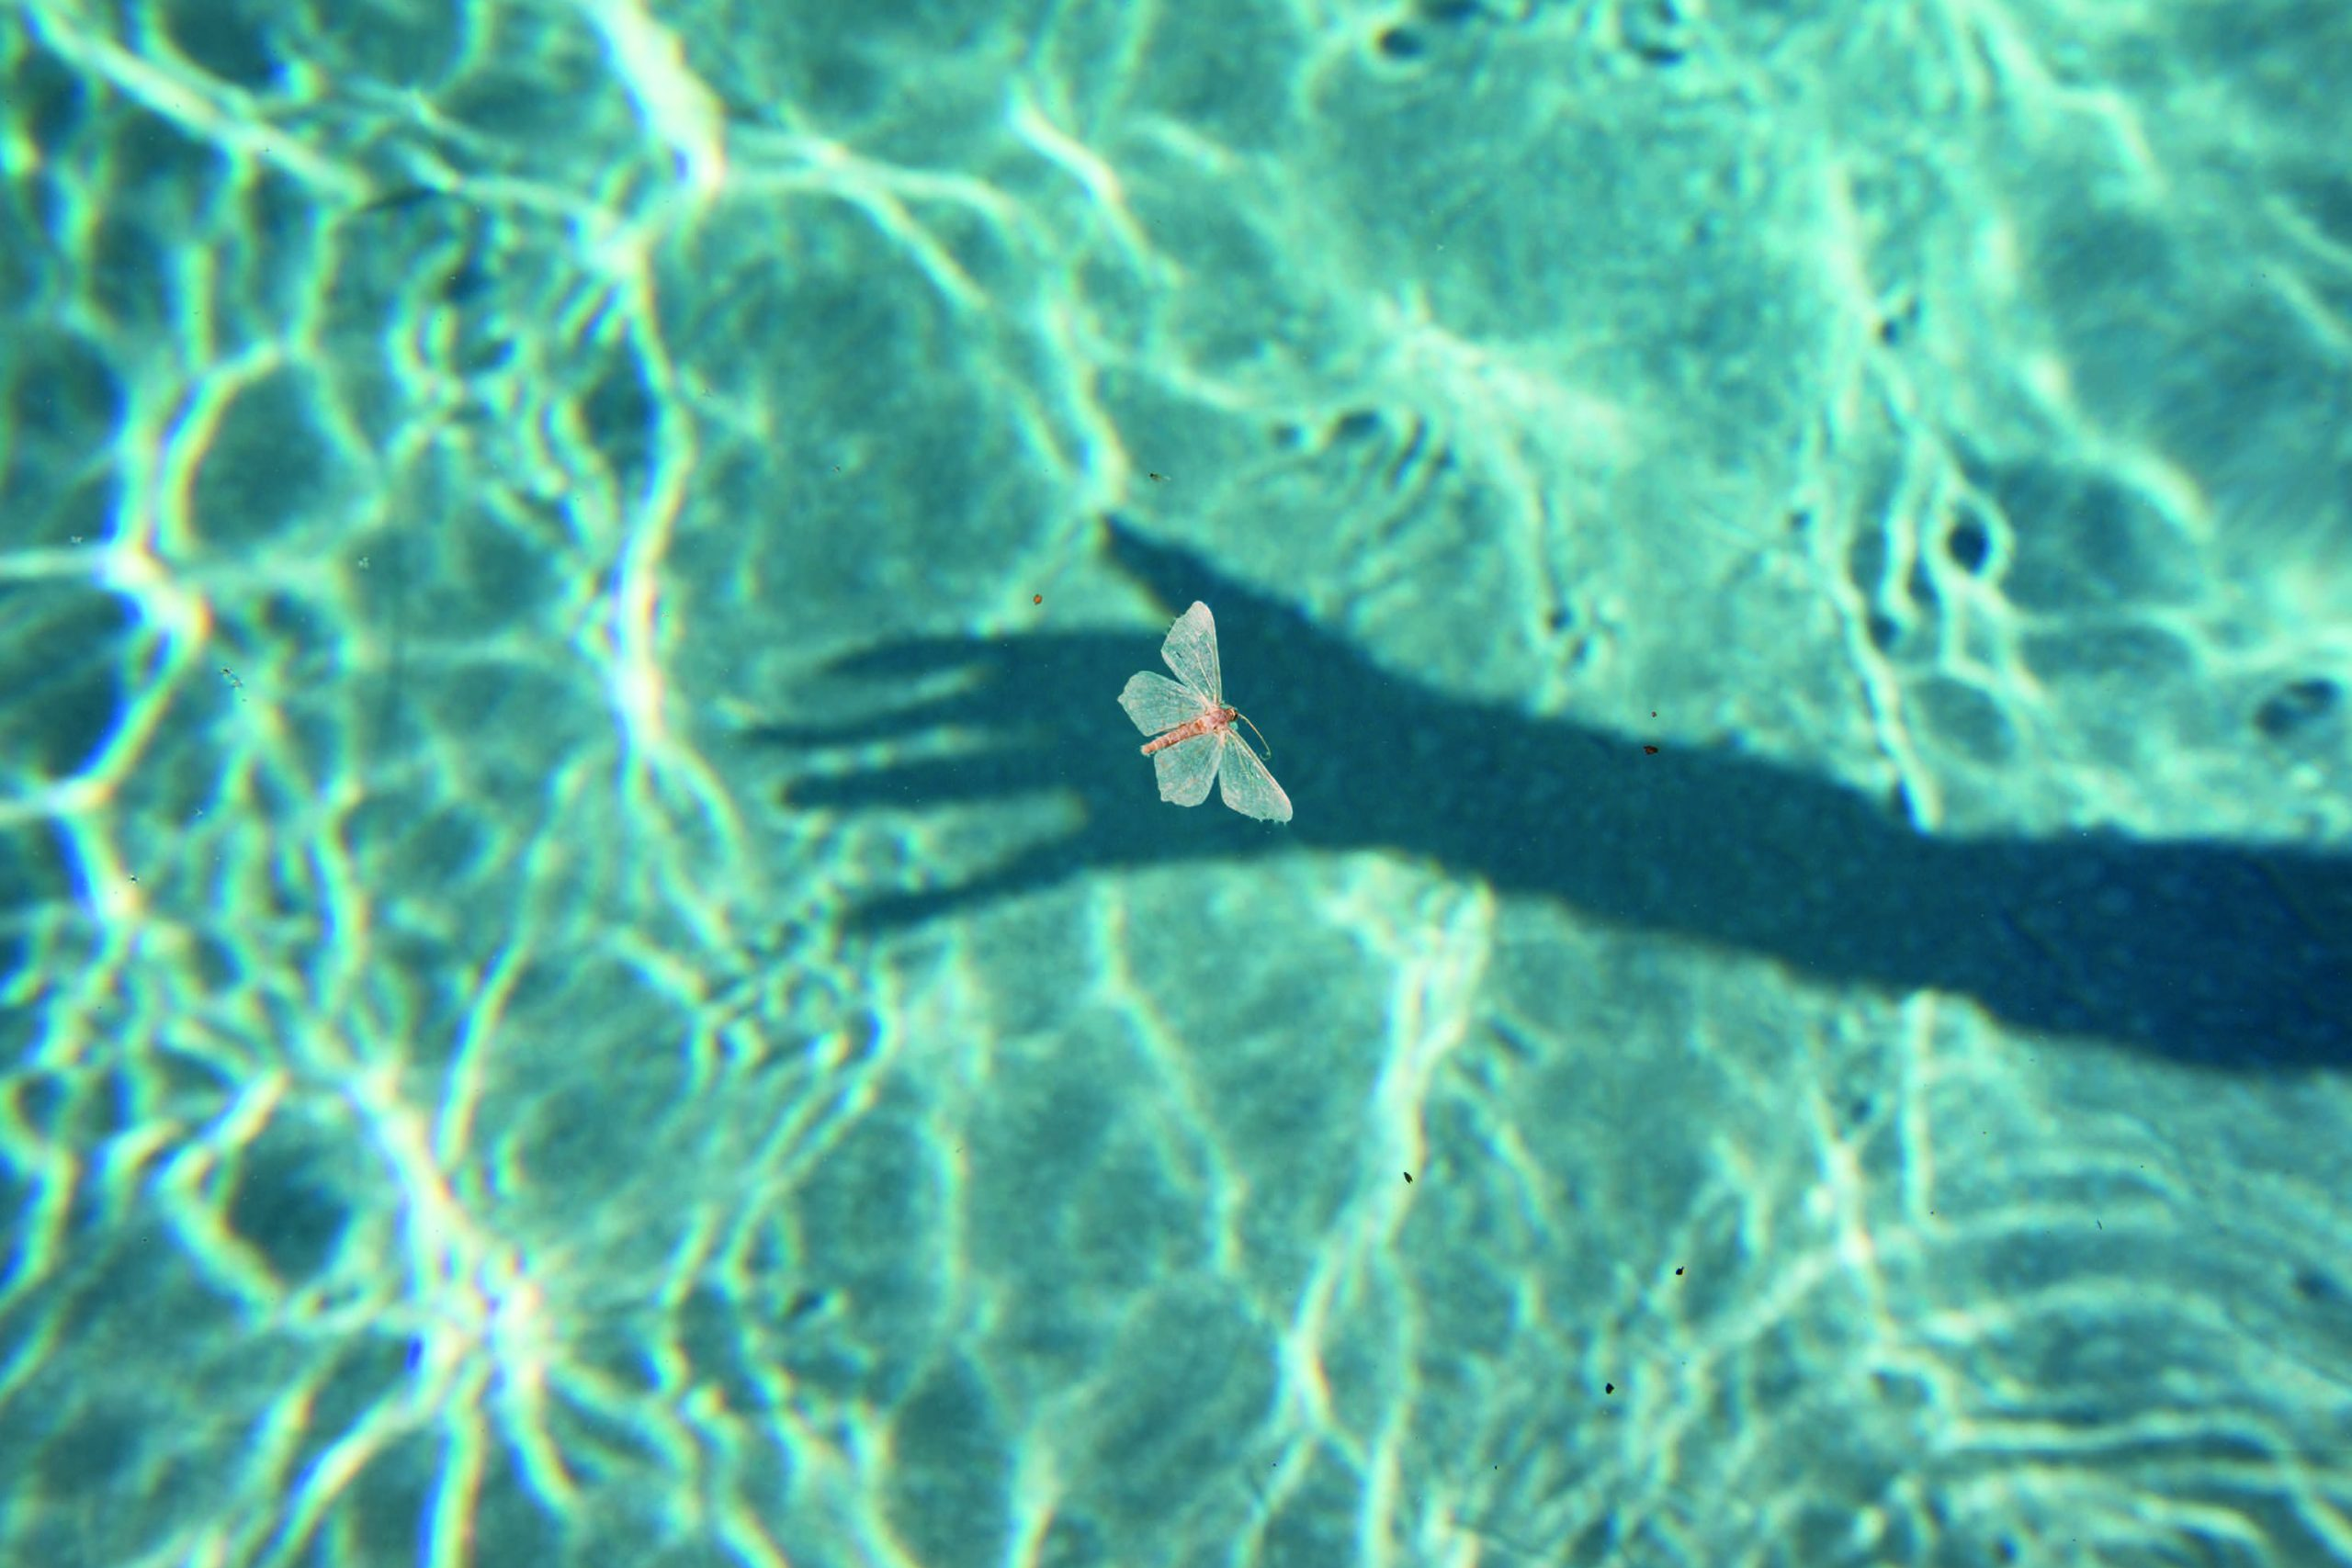 Dead moth floating on pool © Philip Heying